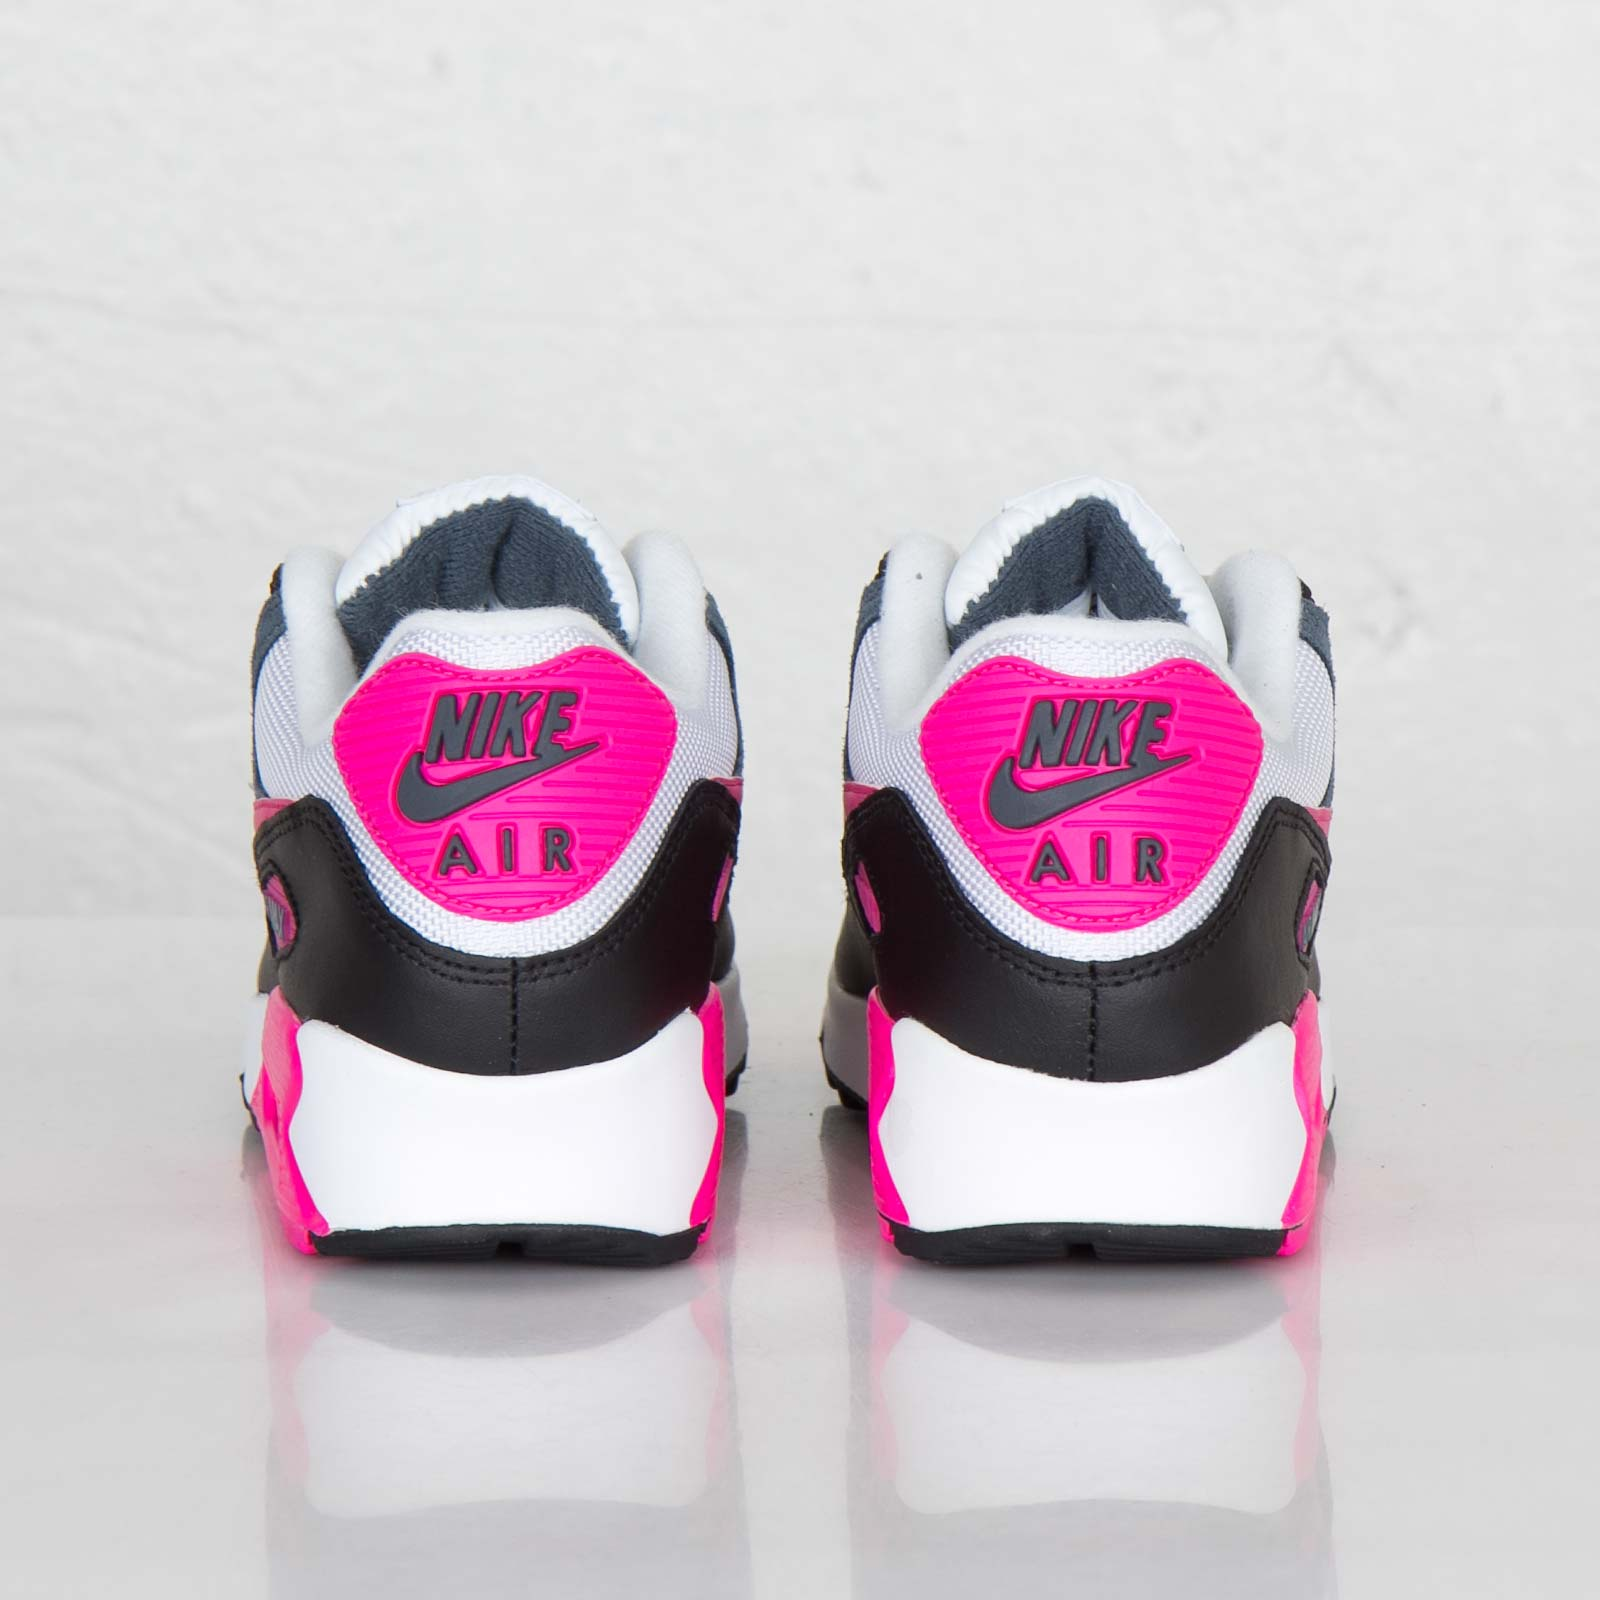 separation shoes cc1bf 29b82 Nike Wmns Air Max 90 Essential - 616730-100 - Sneakersnstuff   sneakers    streetwear online since 1999